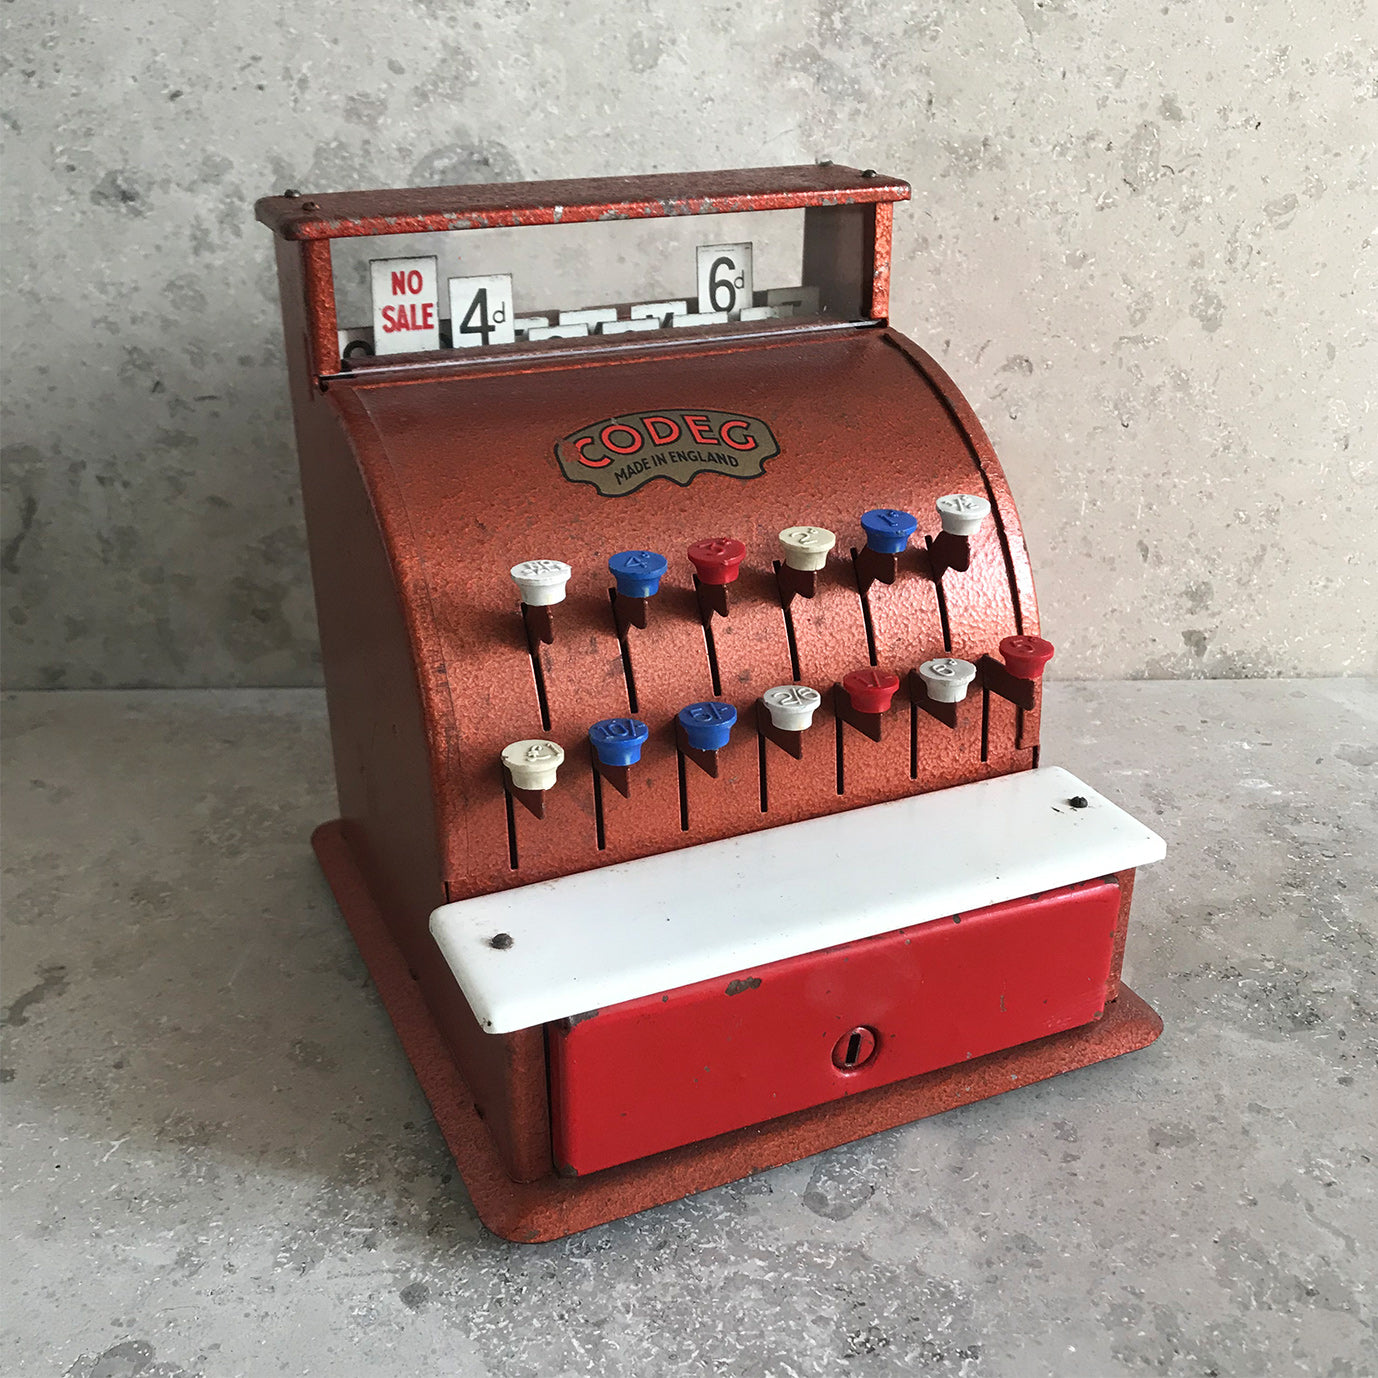 Codeg, children's toy cash tin plate cash register - SHOP NOW - www.intovintage.co.uk